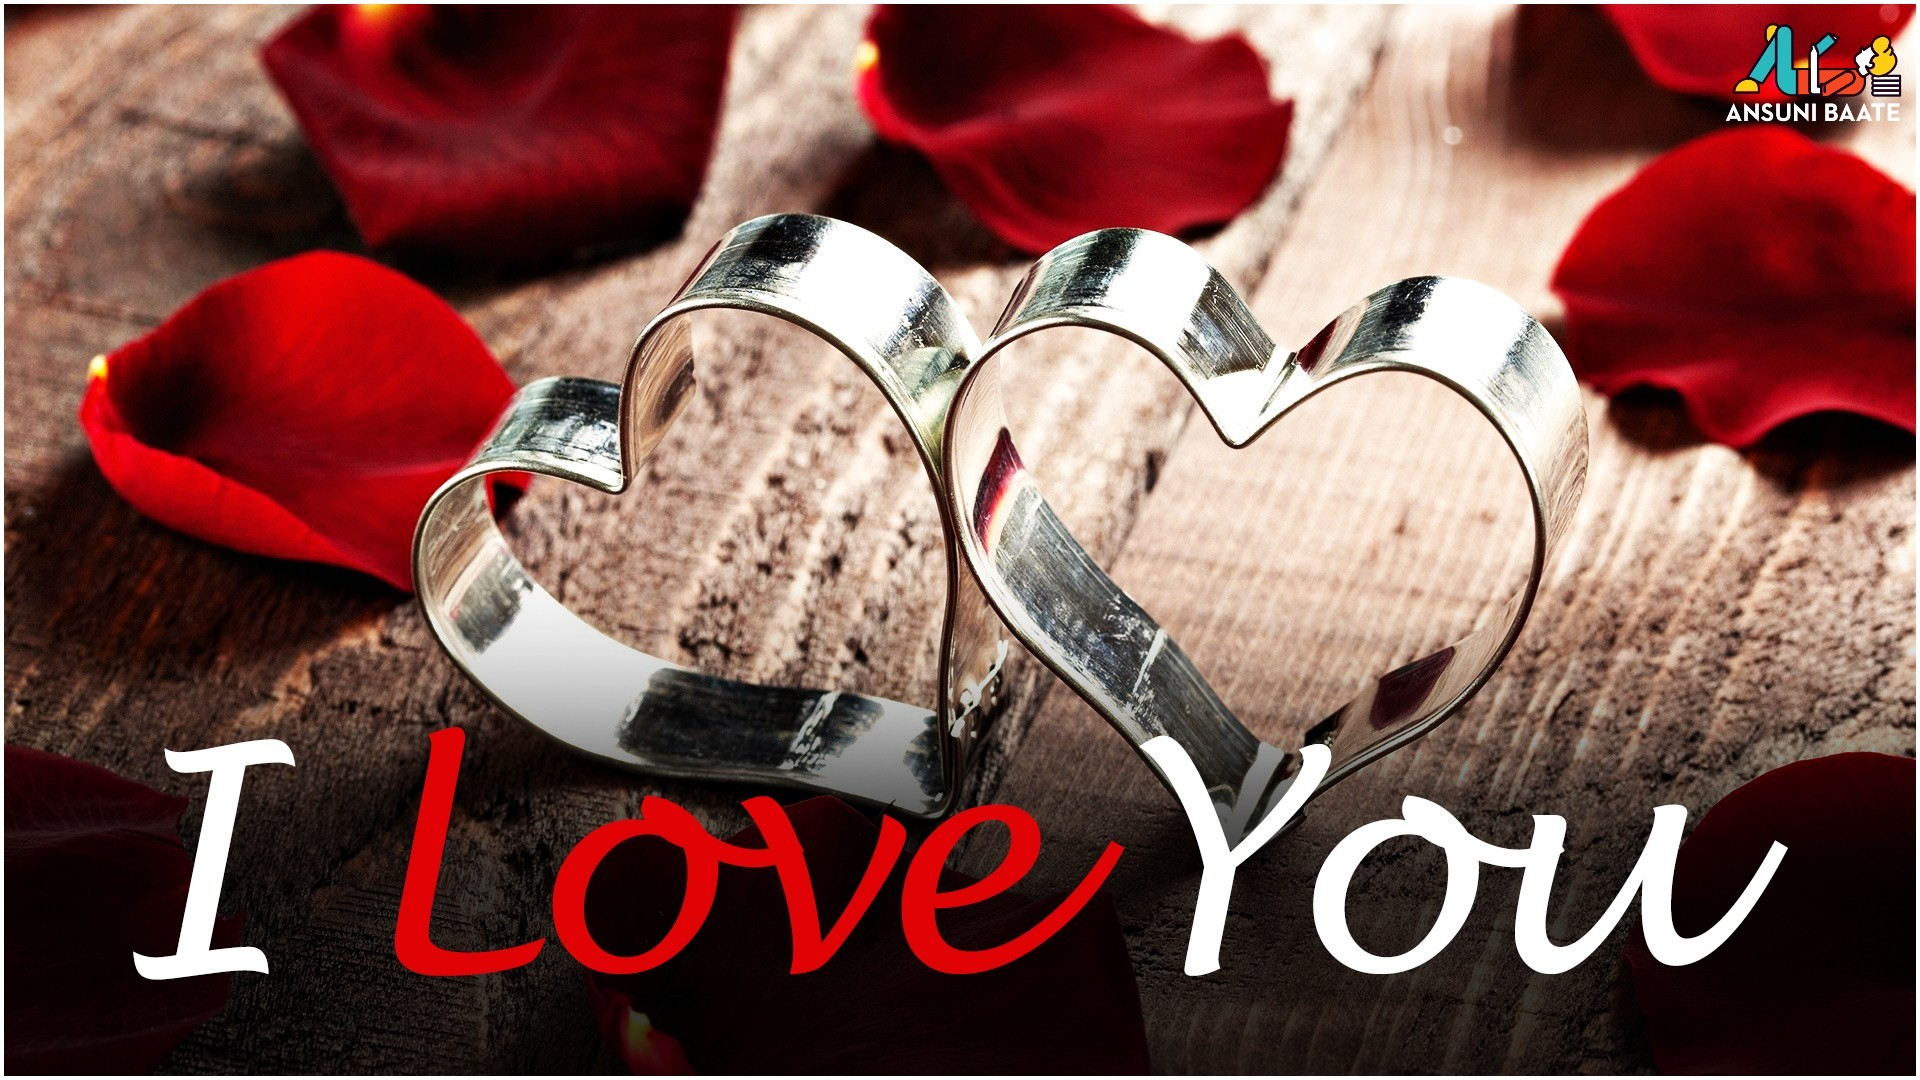 50 Best I Love You Images Collection For Whatsapp: I Love You Heart Wallpaper (64+ Images